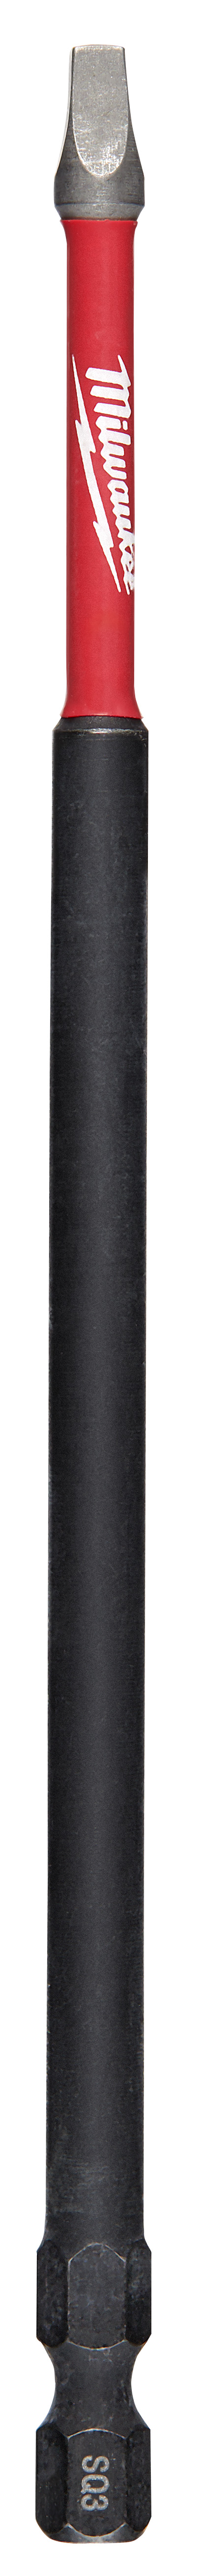 Milwaukee® SHOCKWAVE™ 48-32-4816 Impact Power Bit, #3 Square Recessed Point, 6 in OAL, 1/4 in, Steel